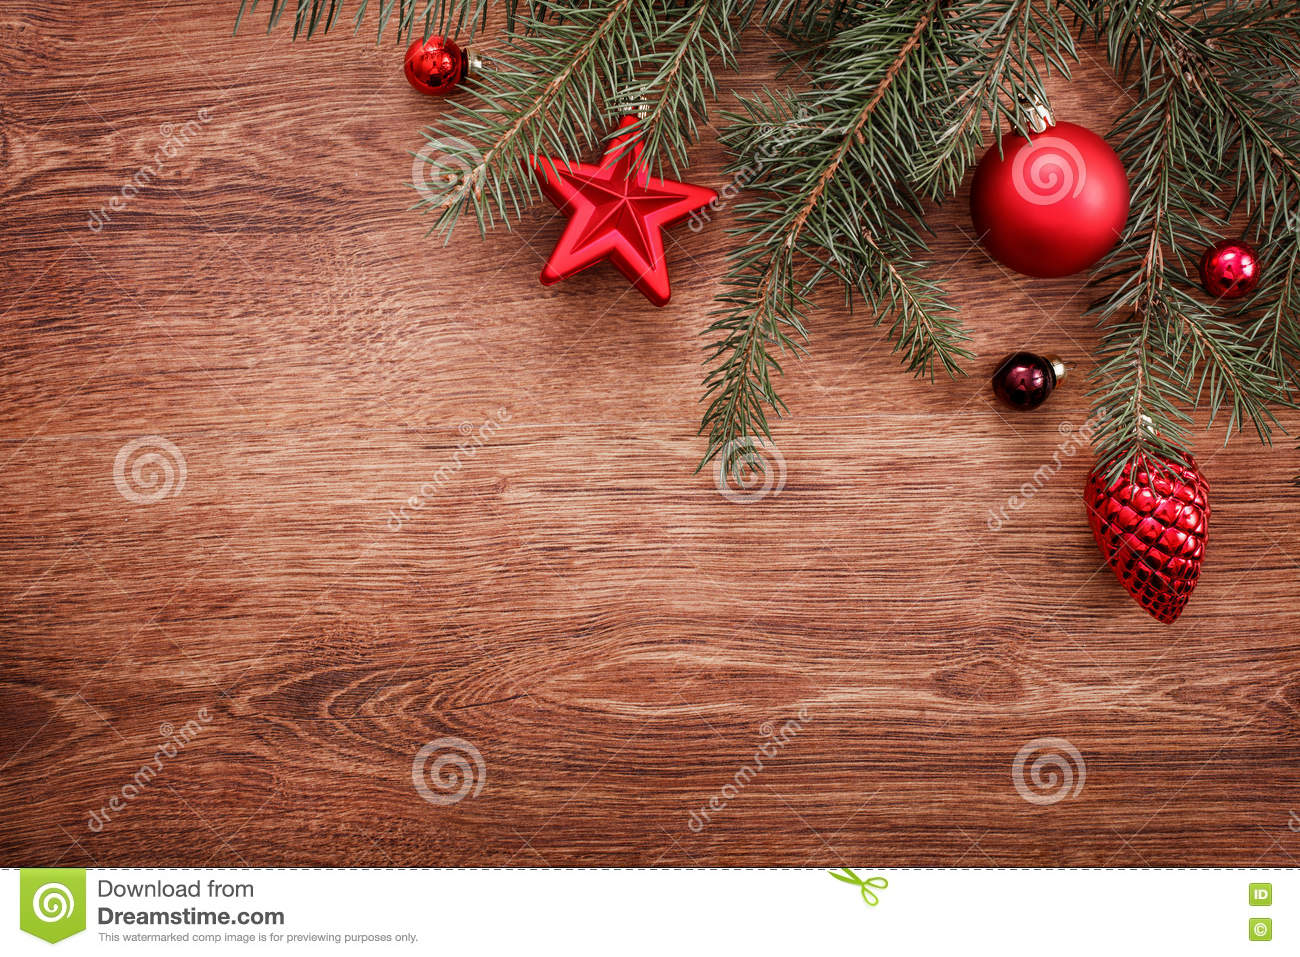 Christmas ornaments and fir tree branch on a rustic wooden background. Xmas card. Happy New Year. Top view